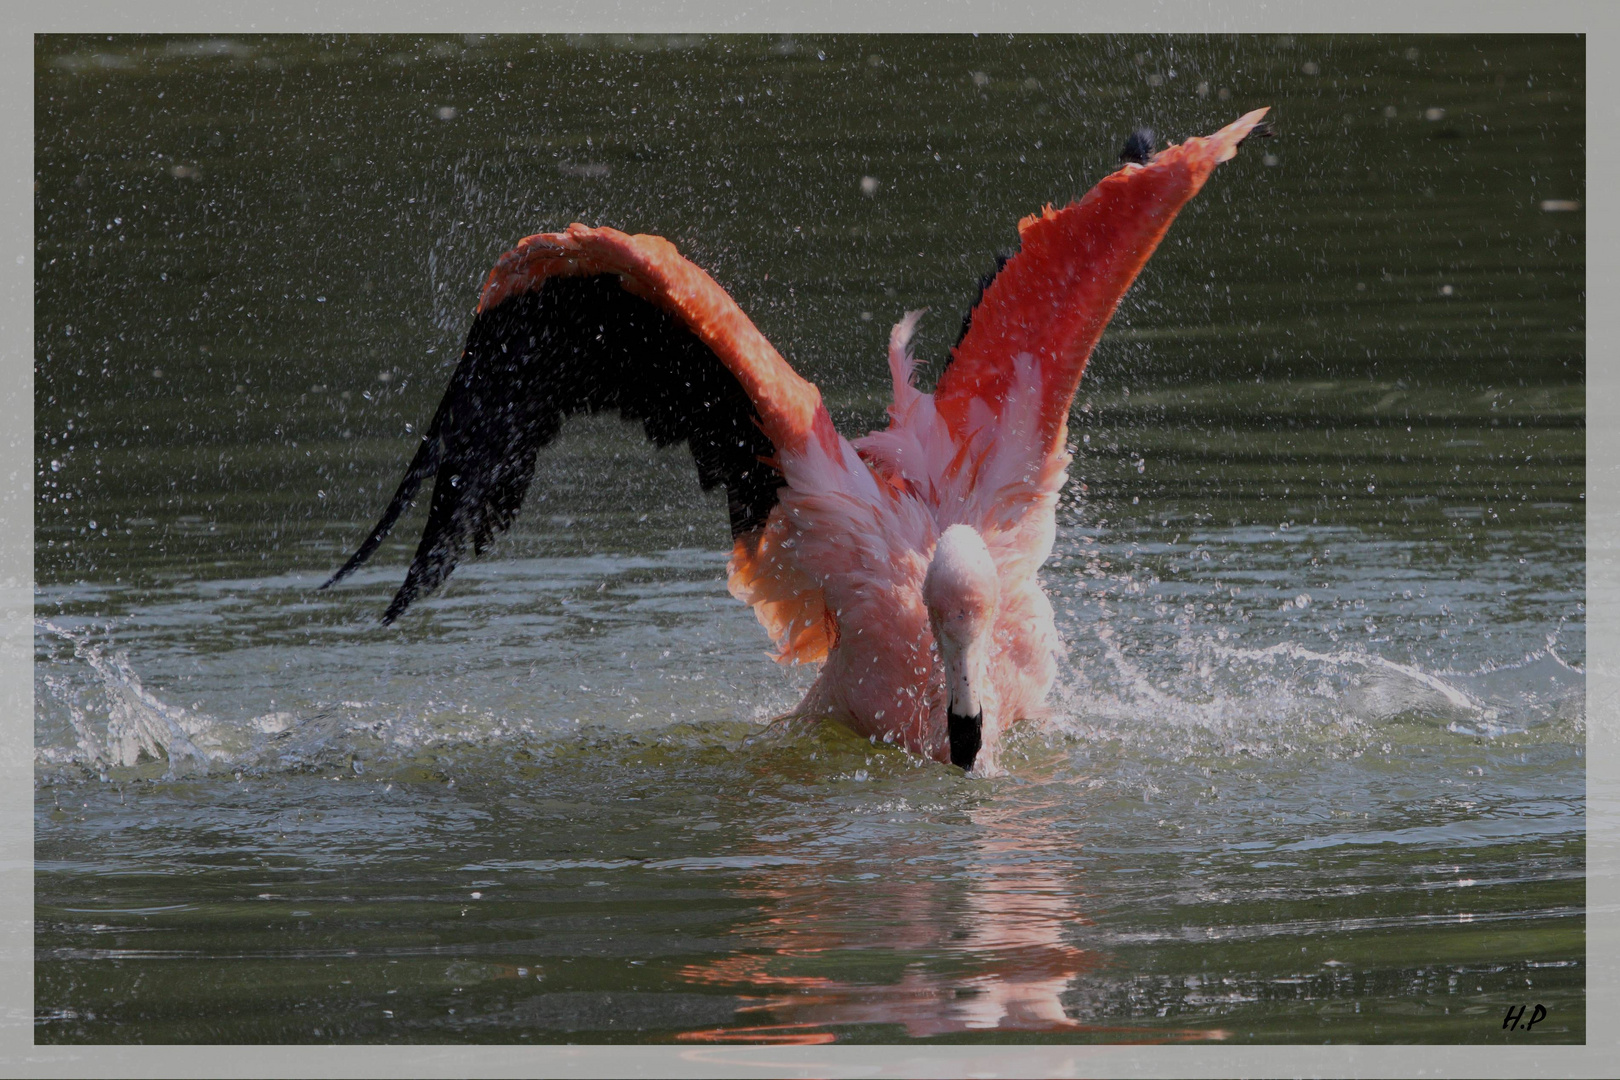 Flamant rose j'ai chaud 1